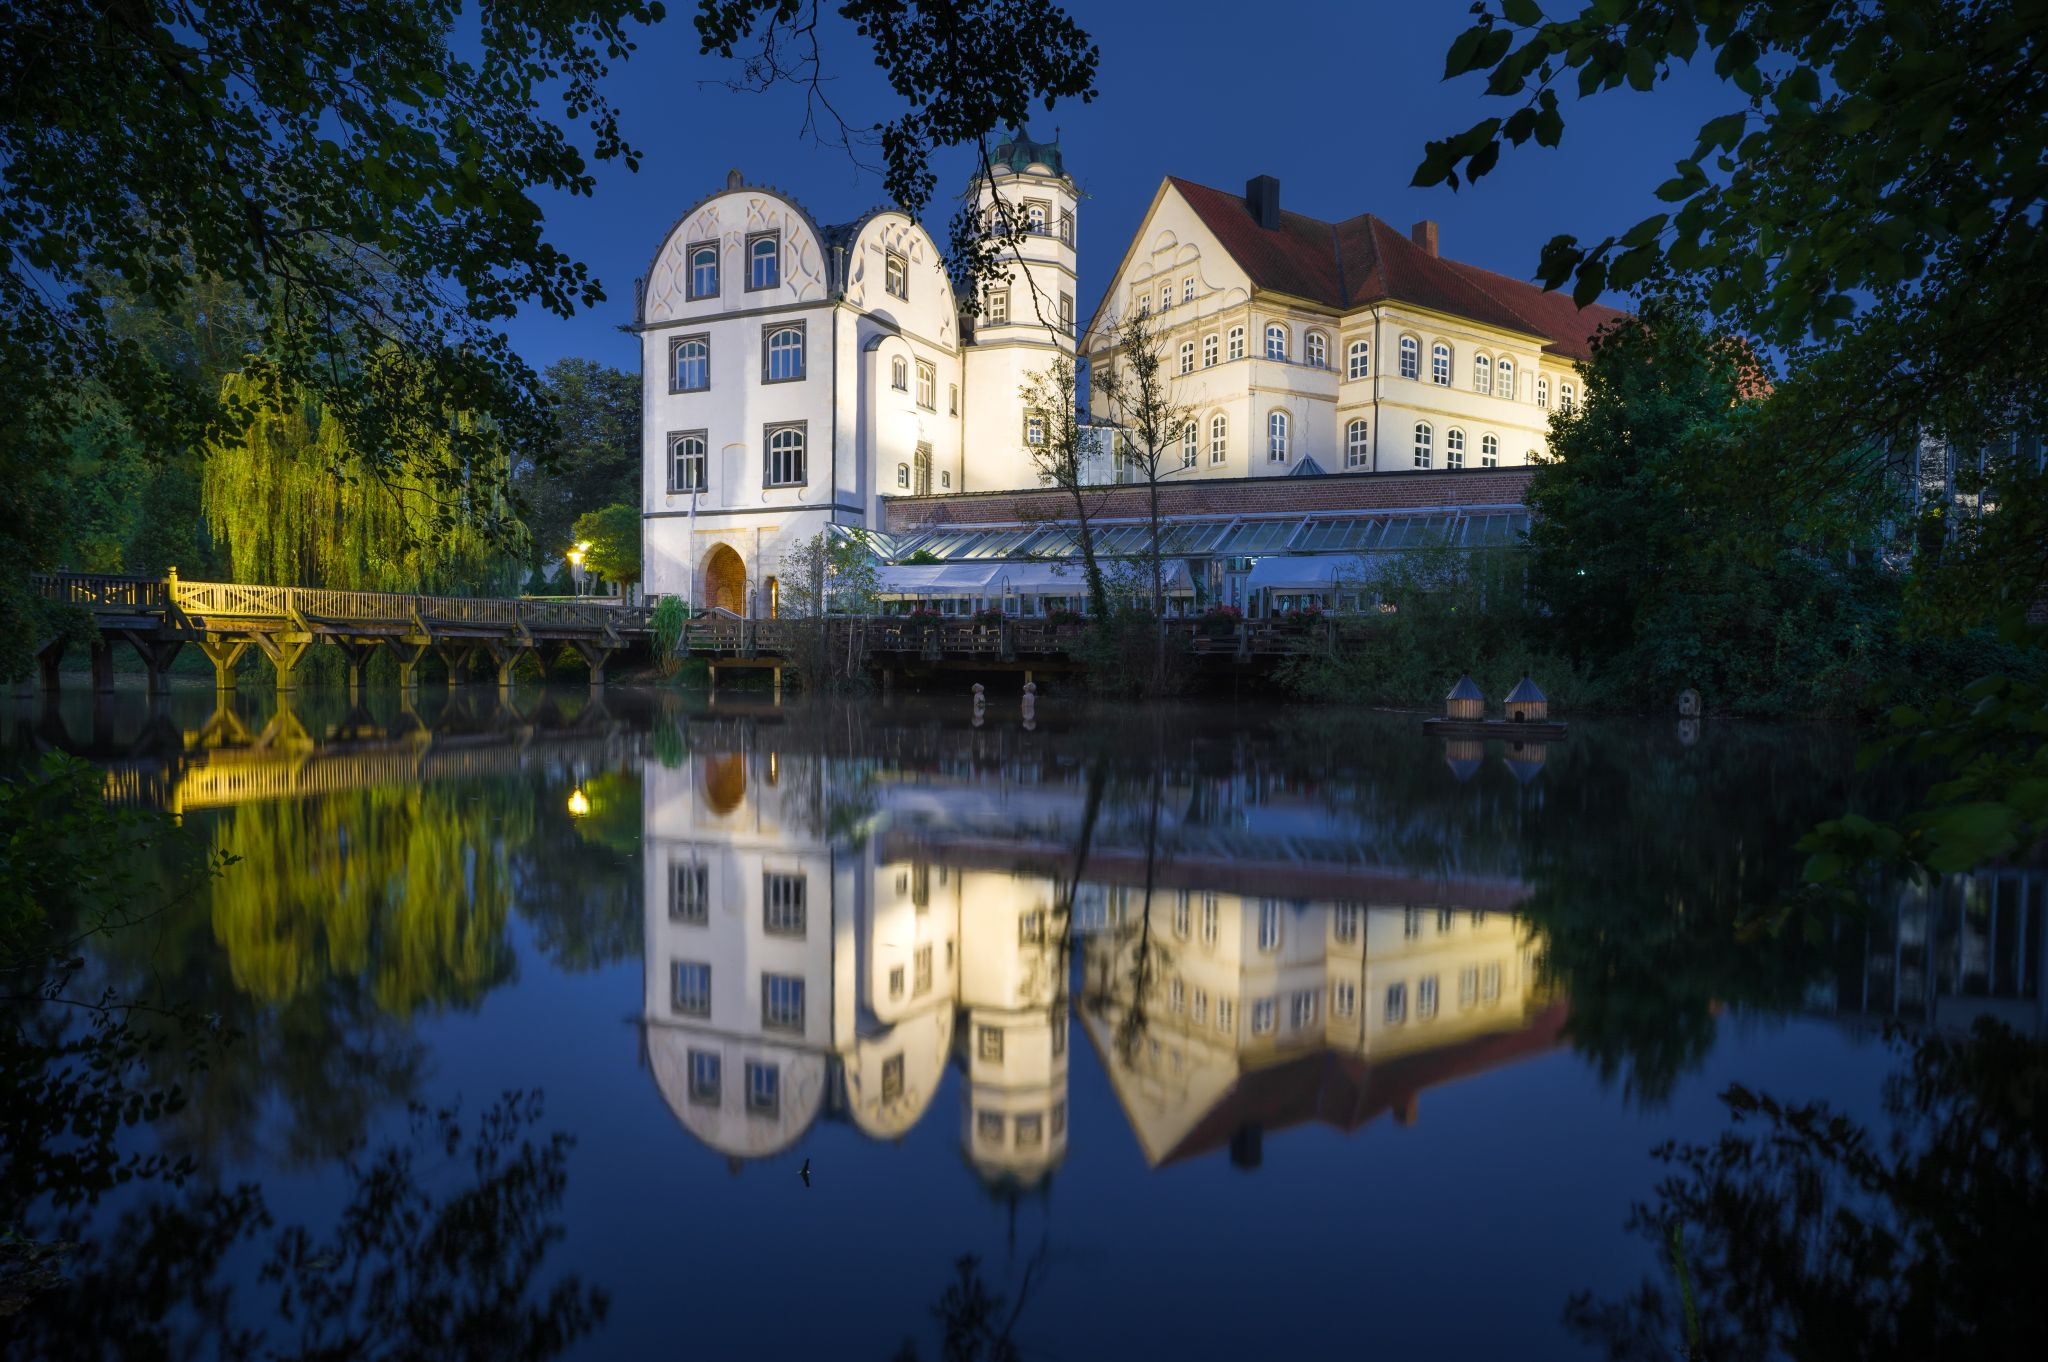 Gifhorn Castle, Germany